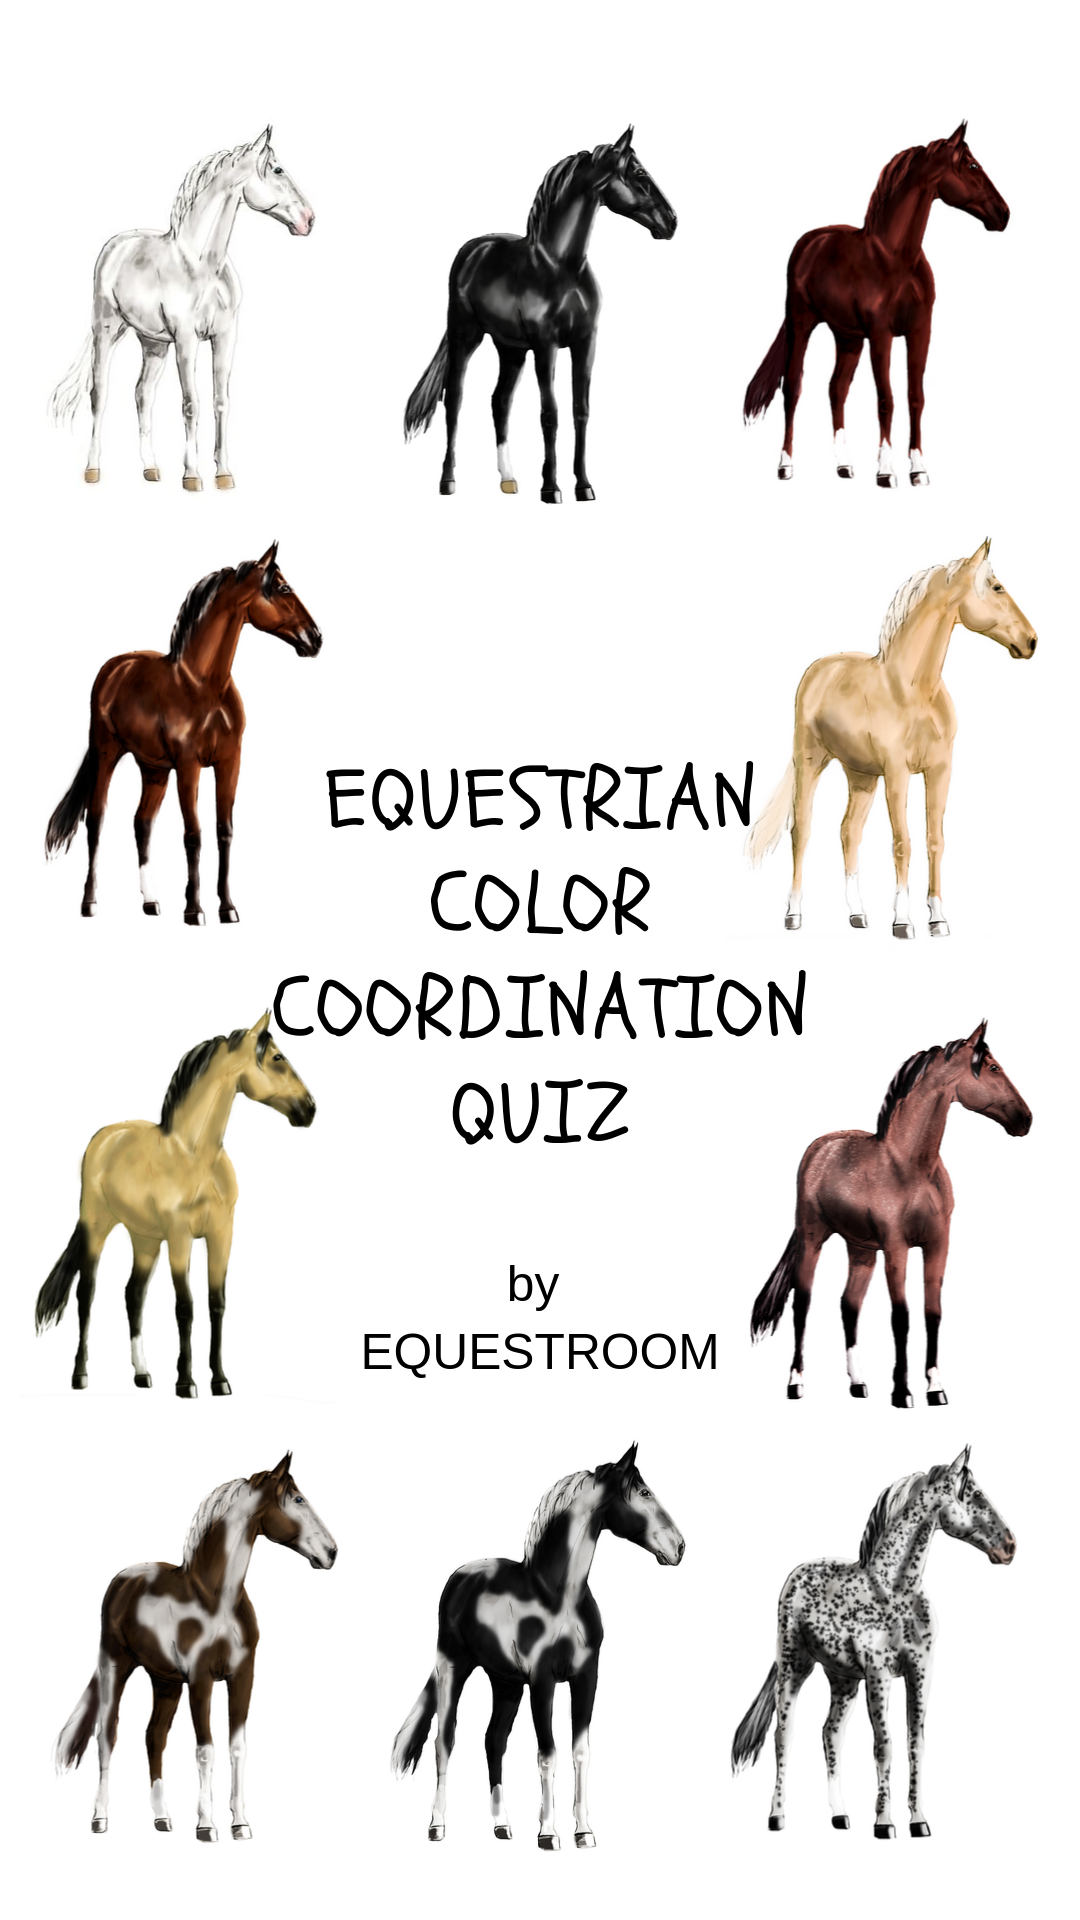 Coat Color Coordination Quiz By Equestroom Check It And See The Match Match For Your Horse Equine Eques Horse Coat Colors Coordinating Colors Equestrian [ 1920 x 1080 Pixel ]